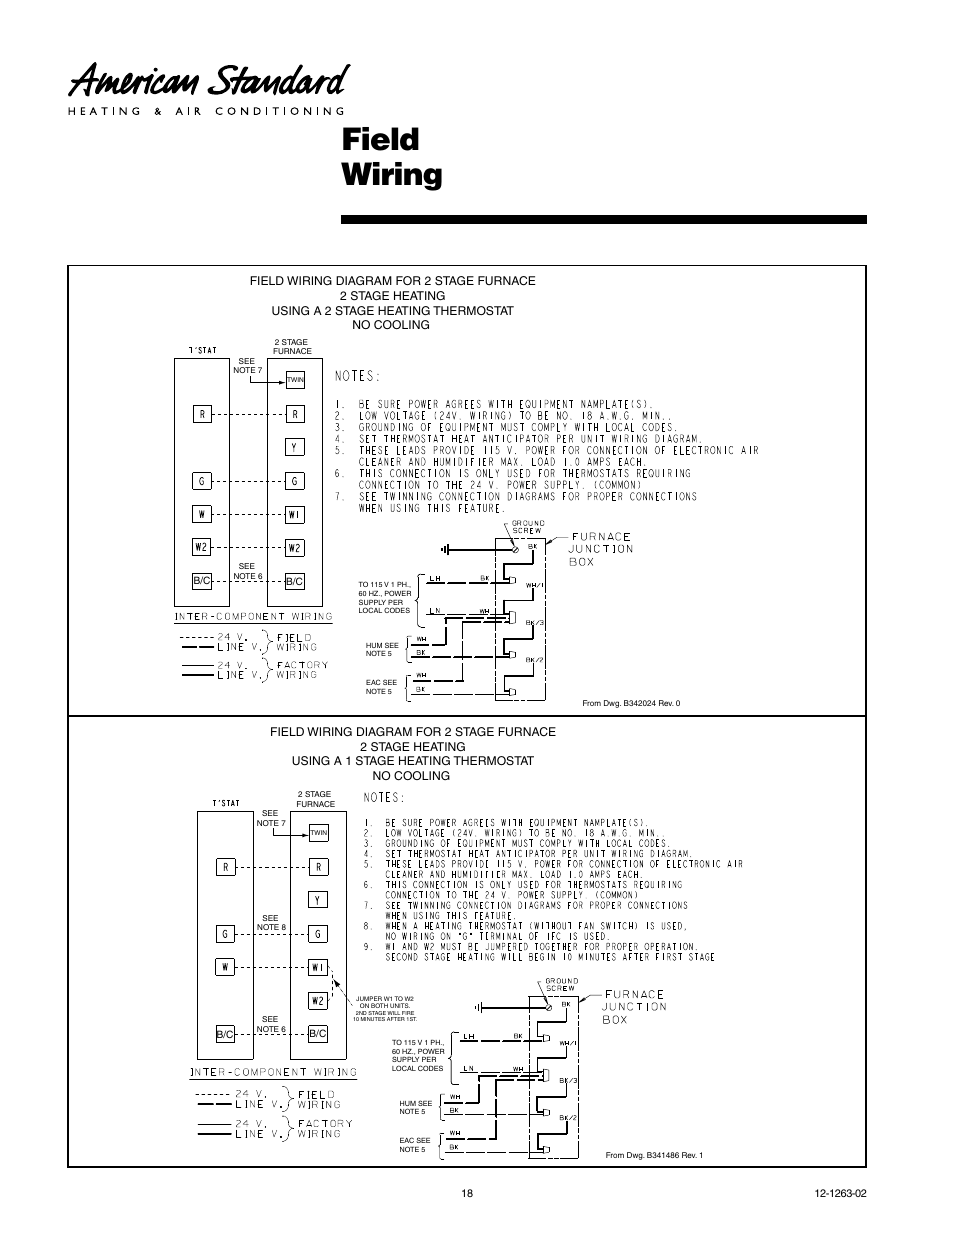 american standard freedom 80 page18 field wiring american standard freedom 80 user manual page 18 24 2-stage furnace thermostat wiring diagram at edmiracle.co